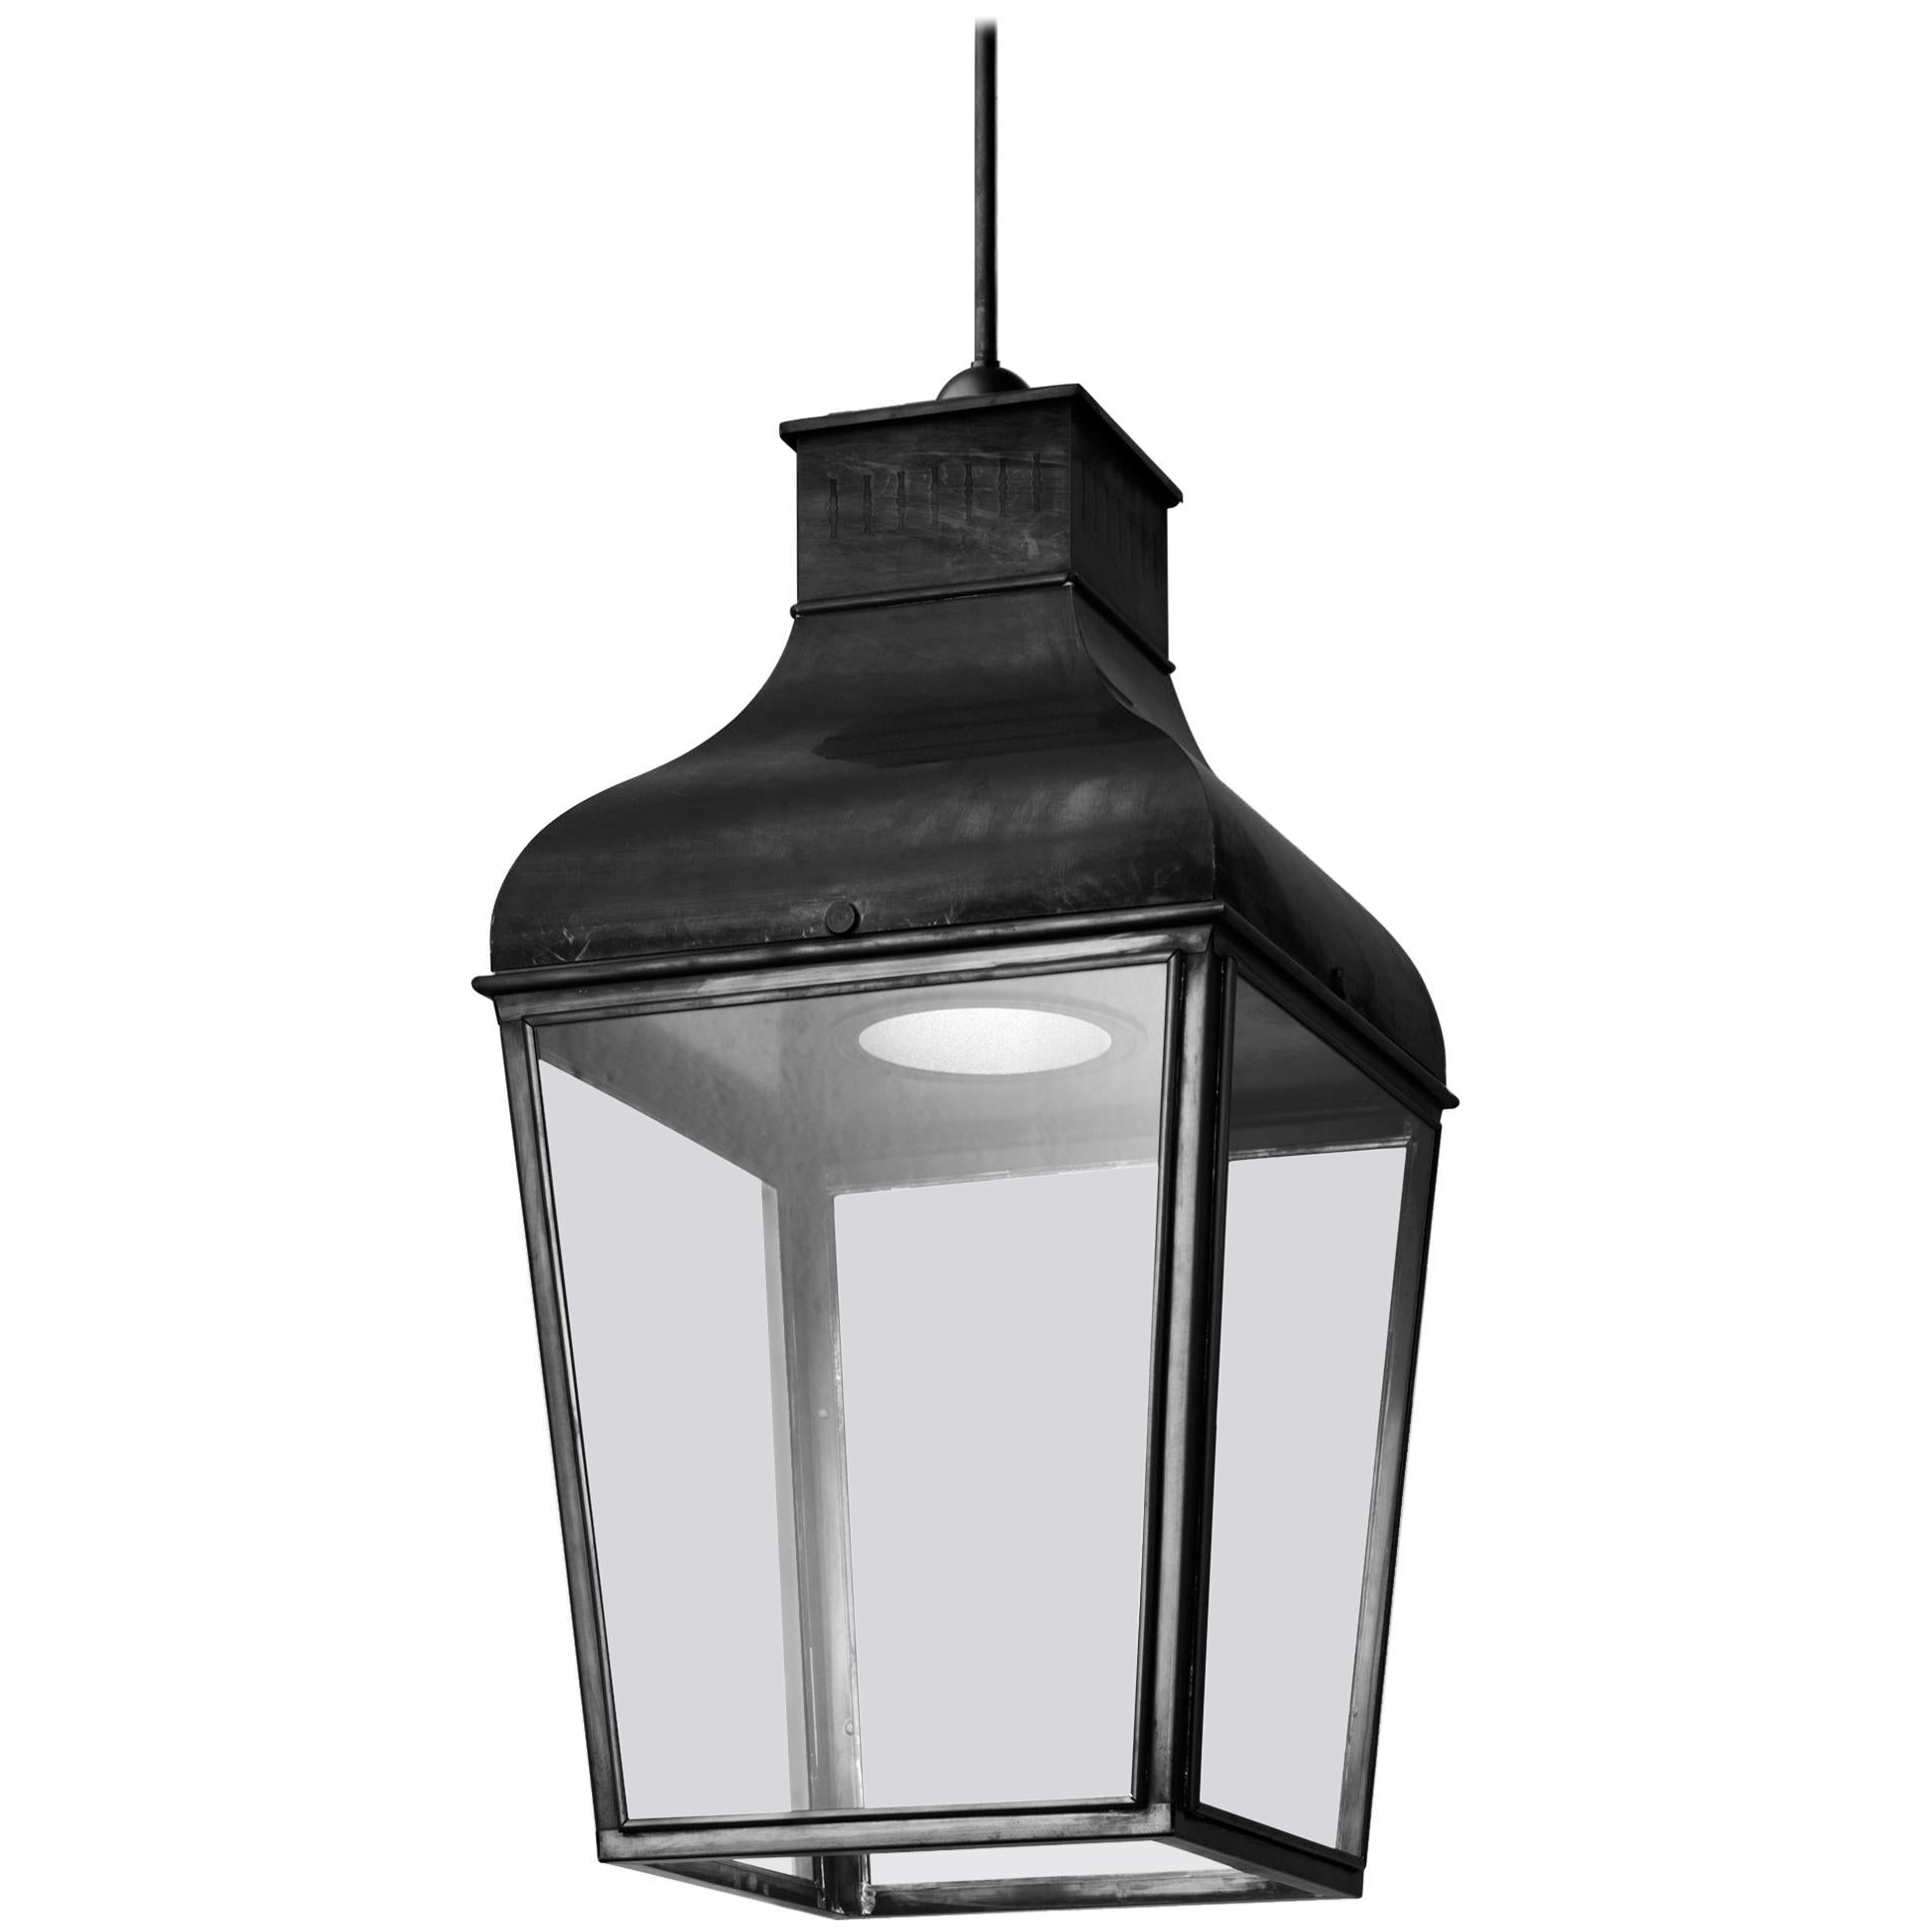 Tekna Montrose LED Pendant Light with Dark Bronze Finish and Clear Glass